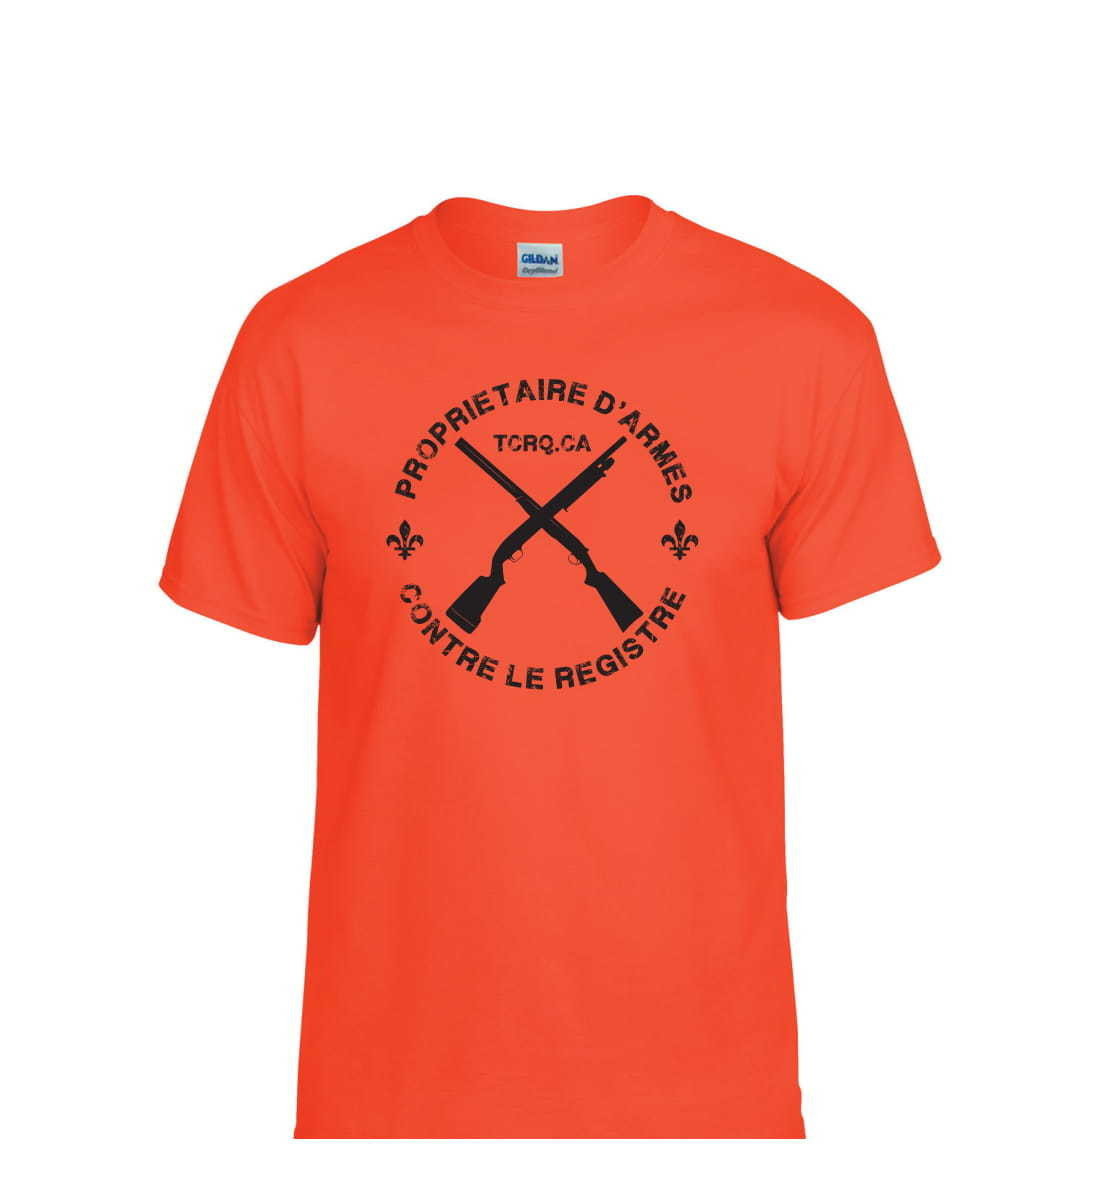 T-Shirt TCRQ orange - Pré-vente